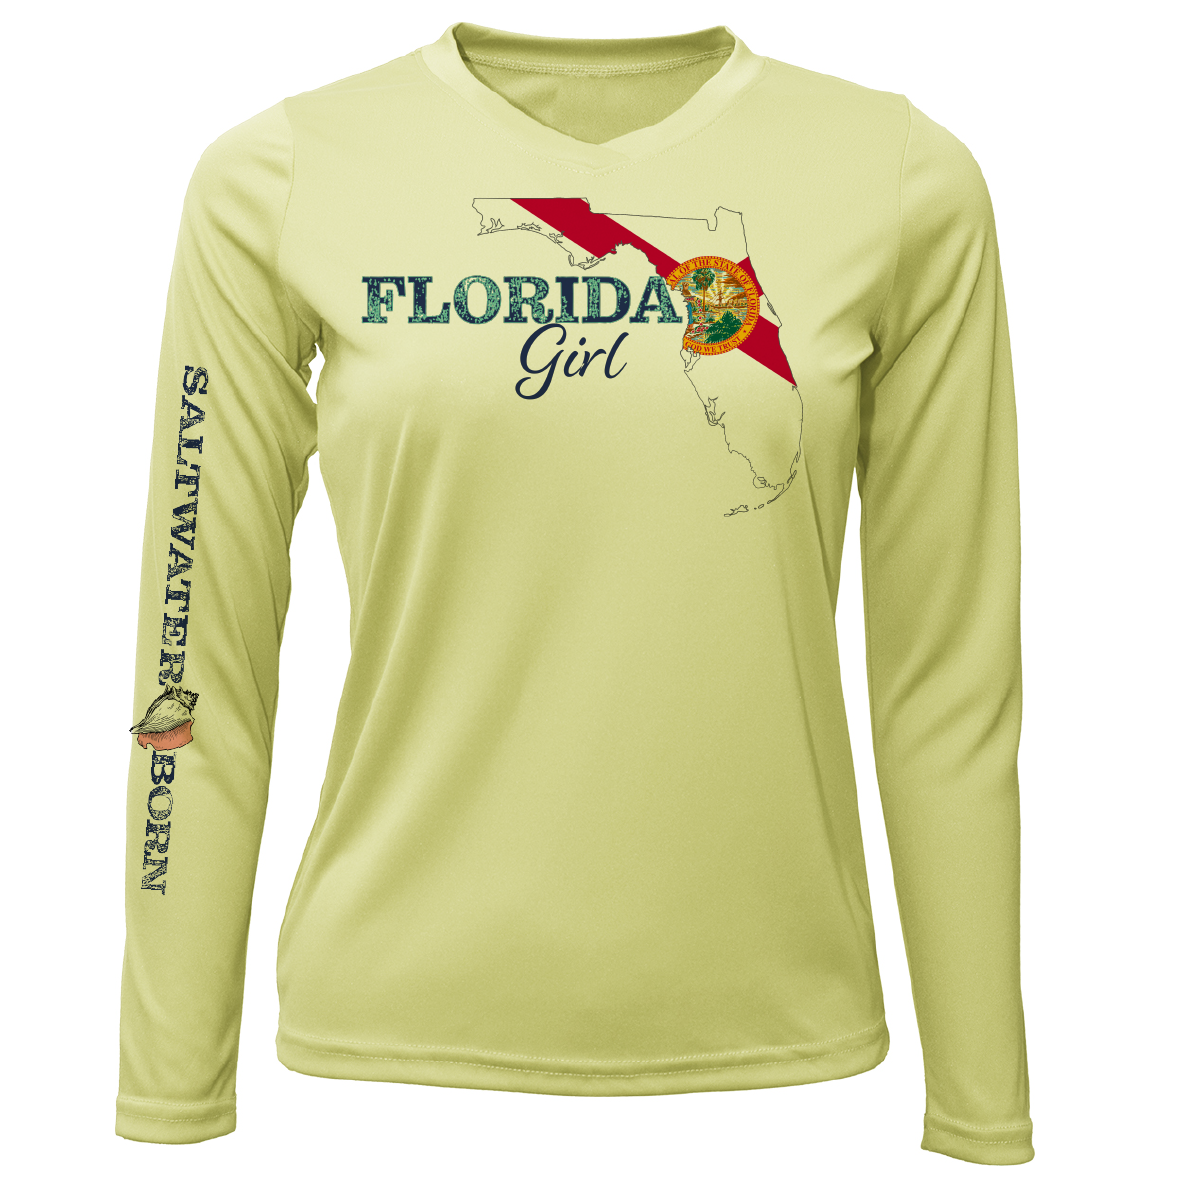 Florida Girl Long Sleeve UPF 50+ Dry-Fit Shirt